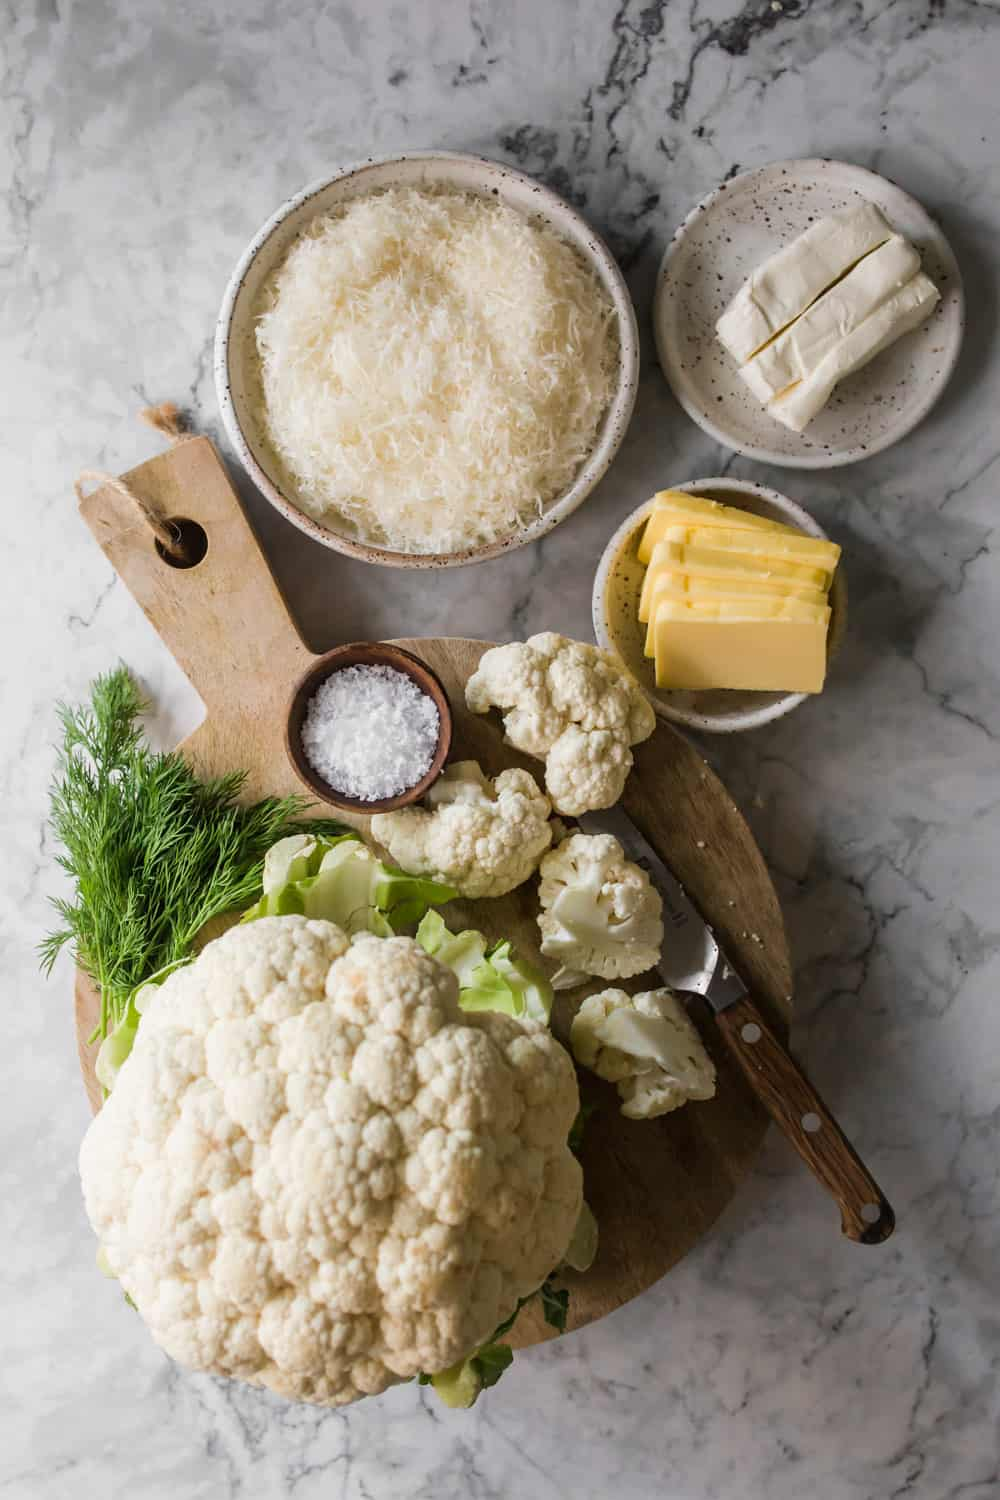 Chopping cauliflower on a wood cutting board. Small bowls with butter, cheese, and cream cheese on the side